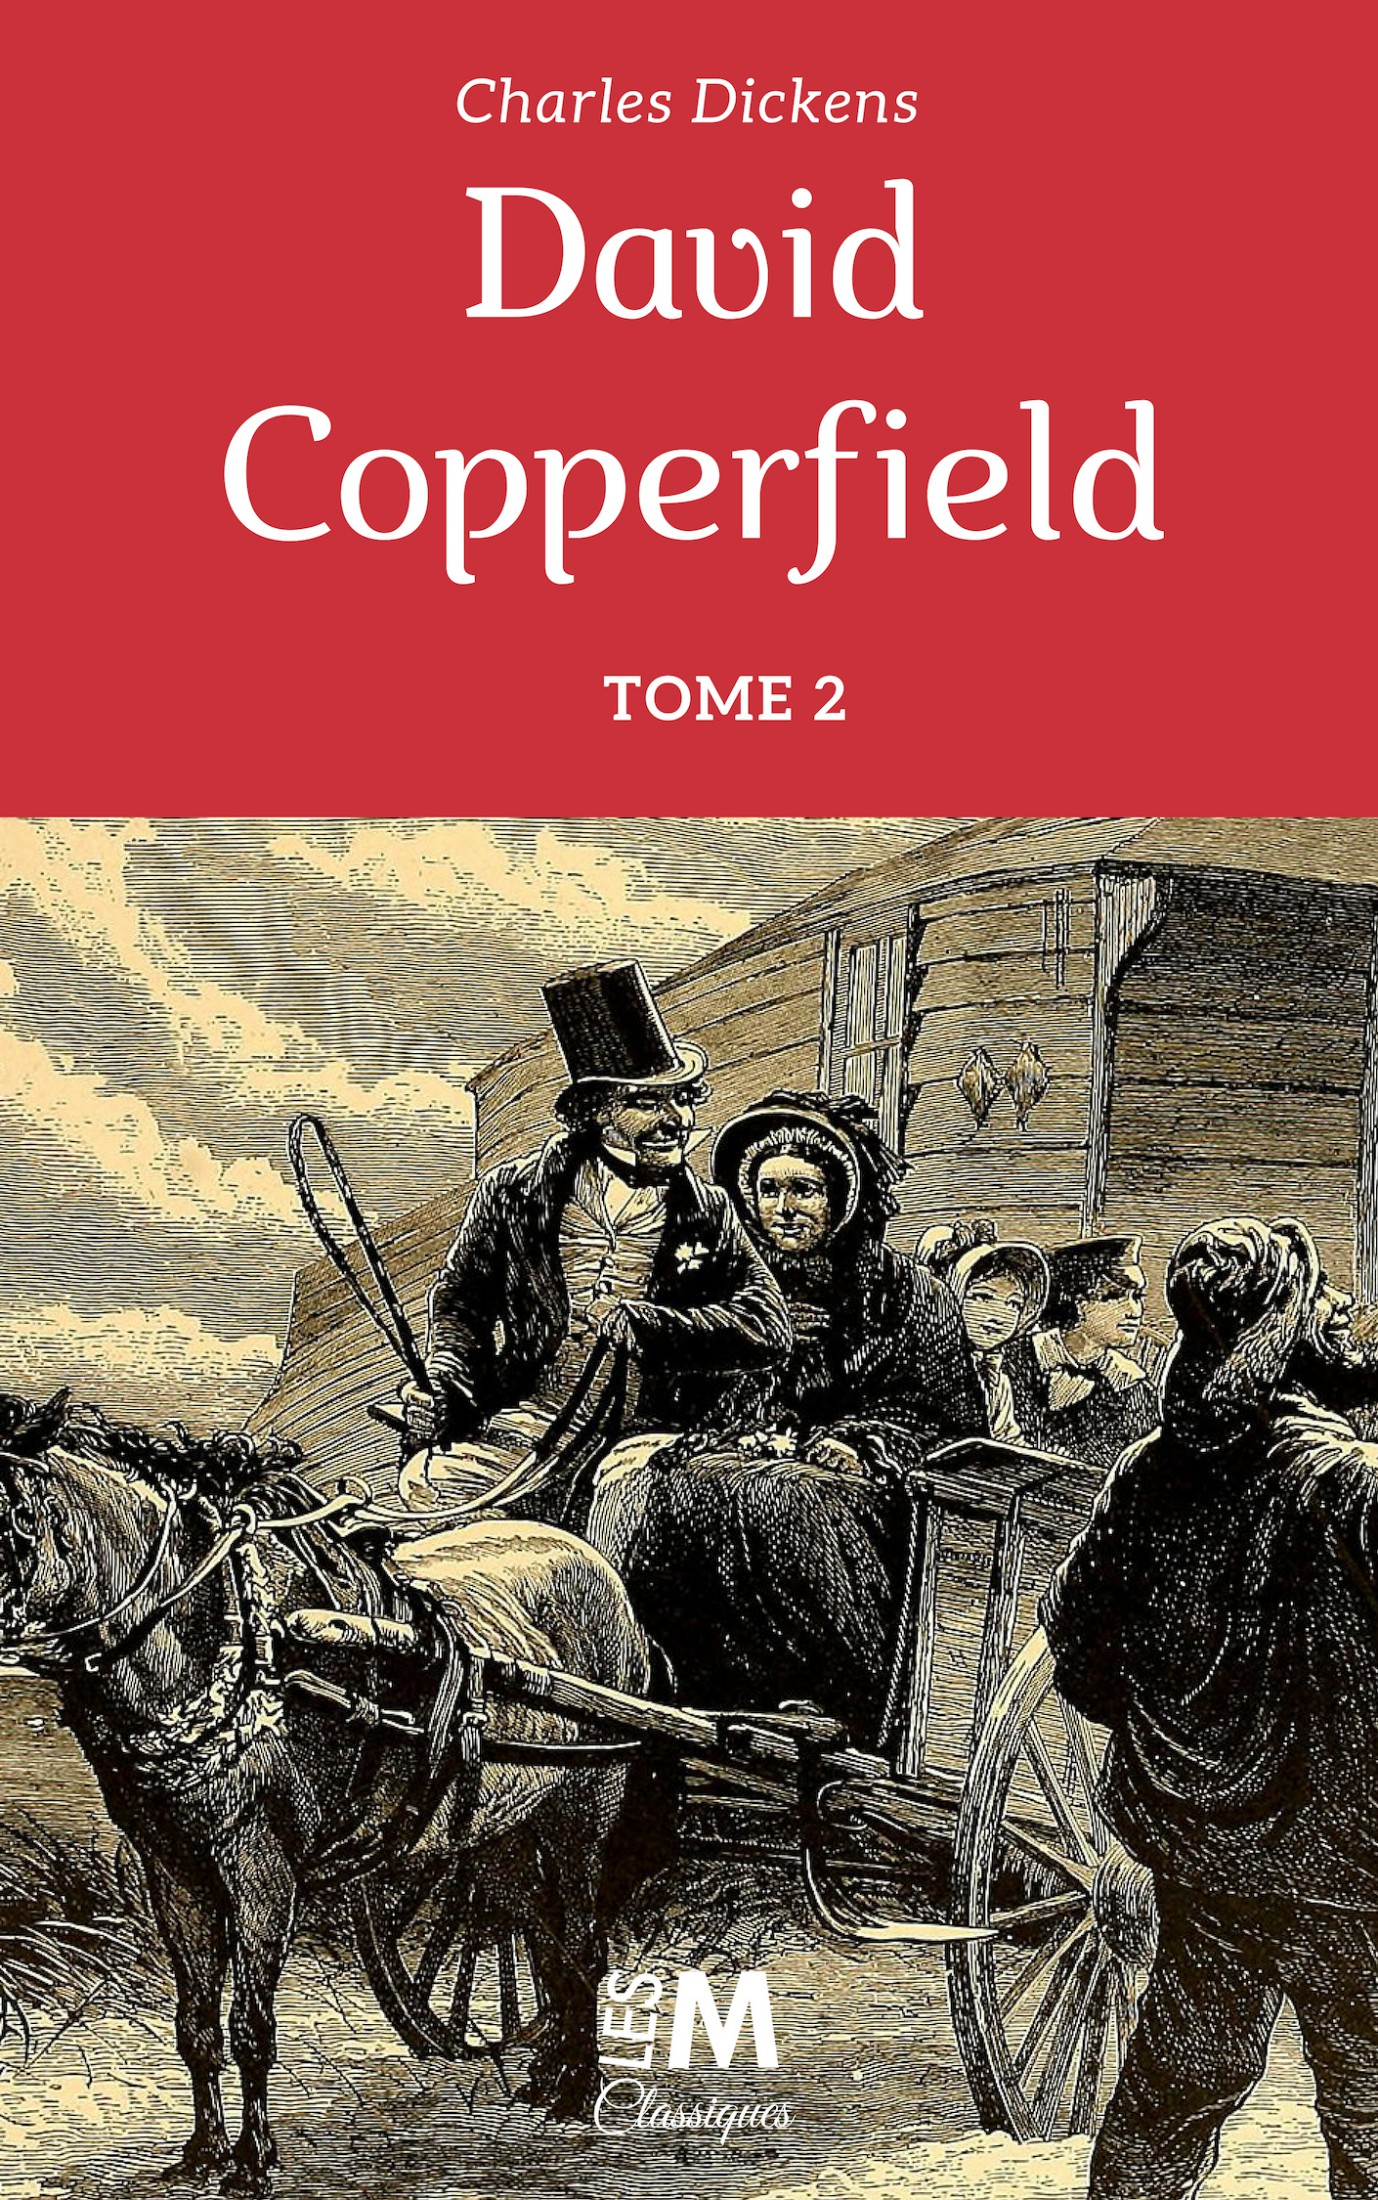 David Copperfield - Tome 2